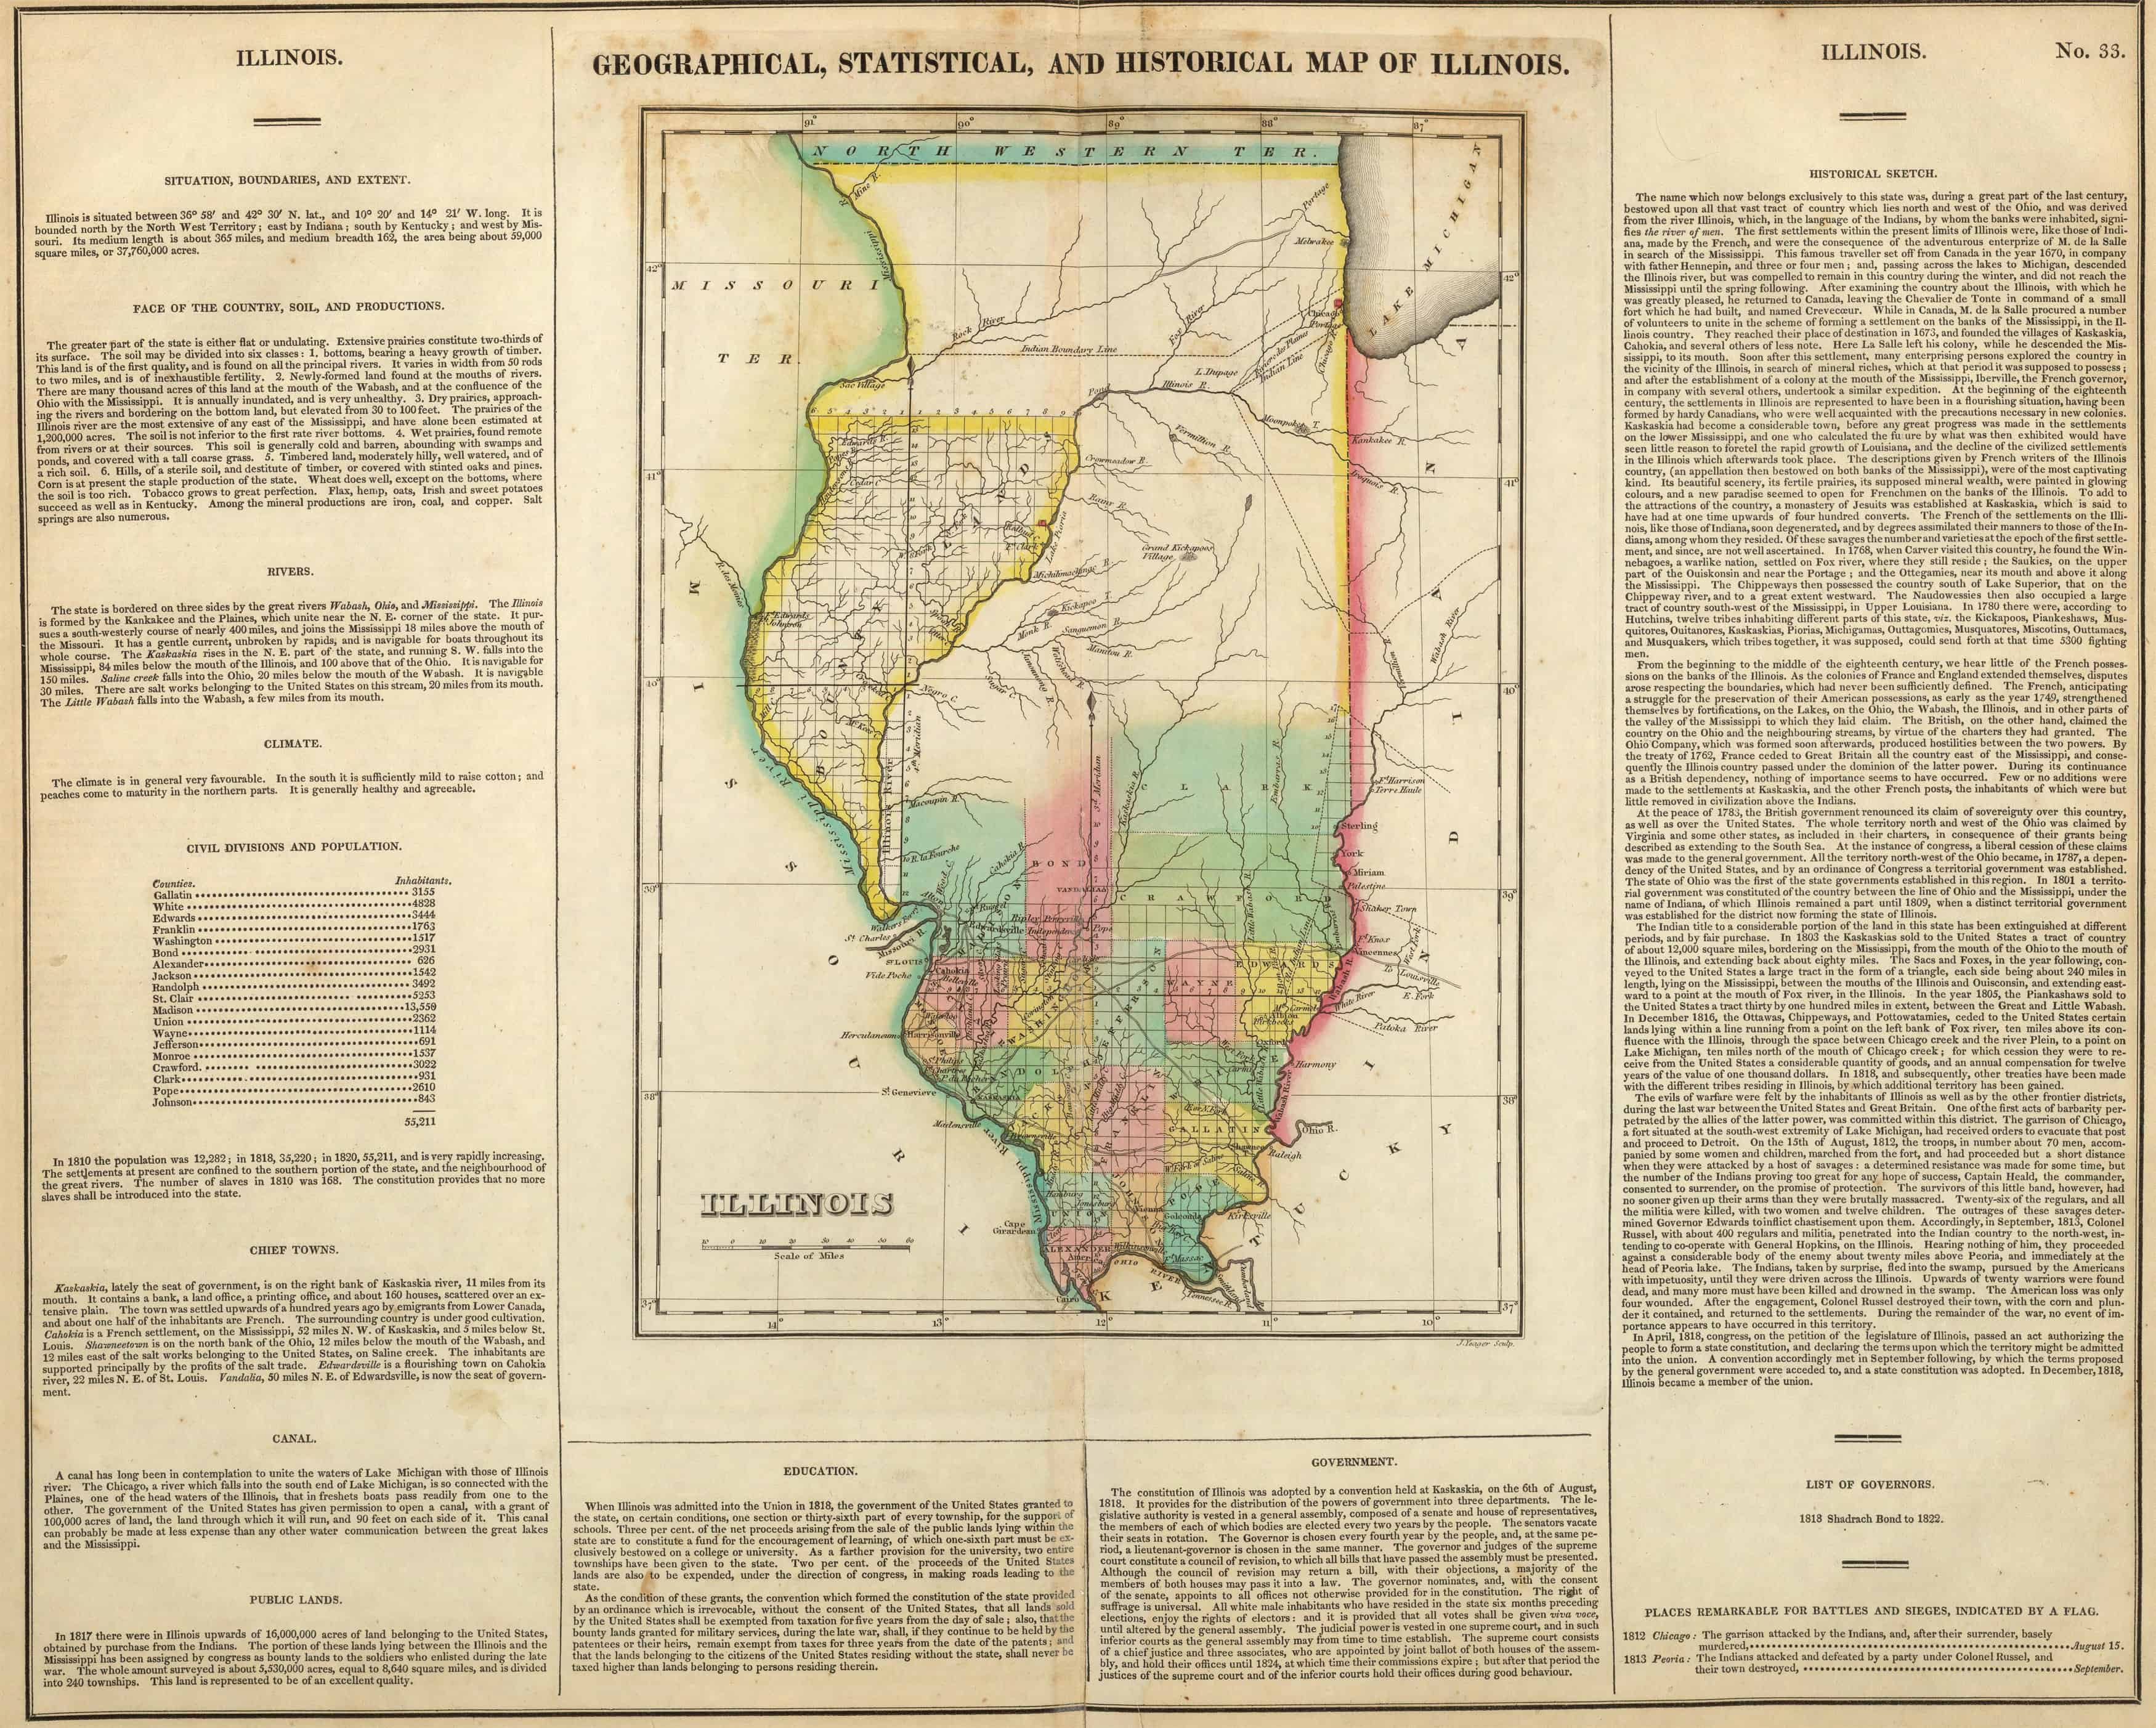 Old Historical City, County and State Maps of Illinios on map of north east illinois, map of north central india, map of north queens, road map of central illinois, map of north central states, map of central illinois towns, map of north central phoenix, cities in central illinois, map of north central college, map of north shreveport, map of north central mexico, map of north puerto rico, map of north milwaukee, map of illinois central college, central plains illinois, map of north central florida, map of east central illinois, map of north west illinois, west central illinois, map of central texas counties,